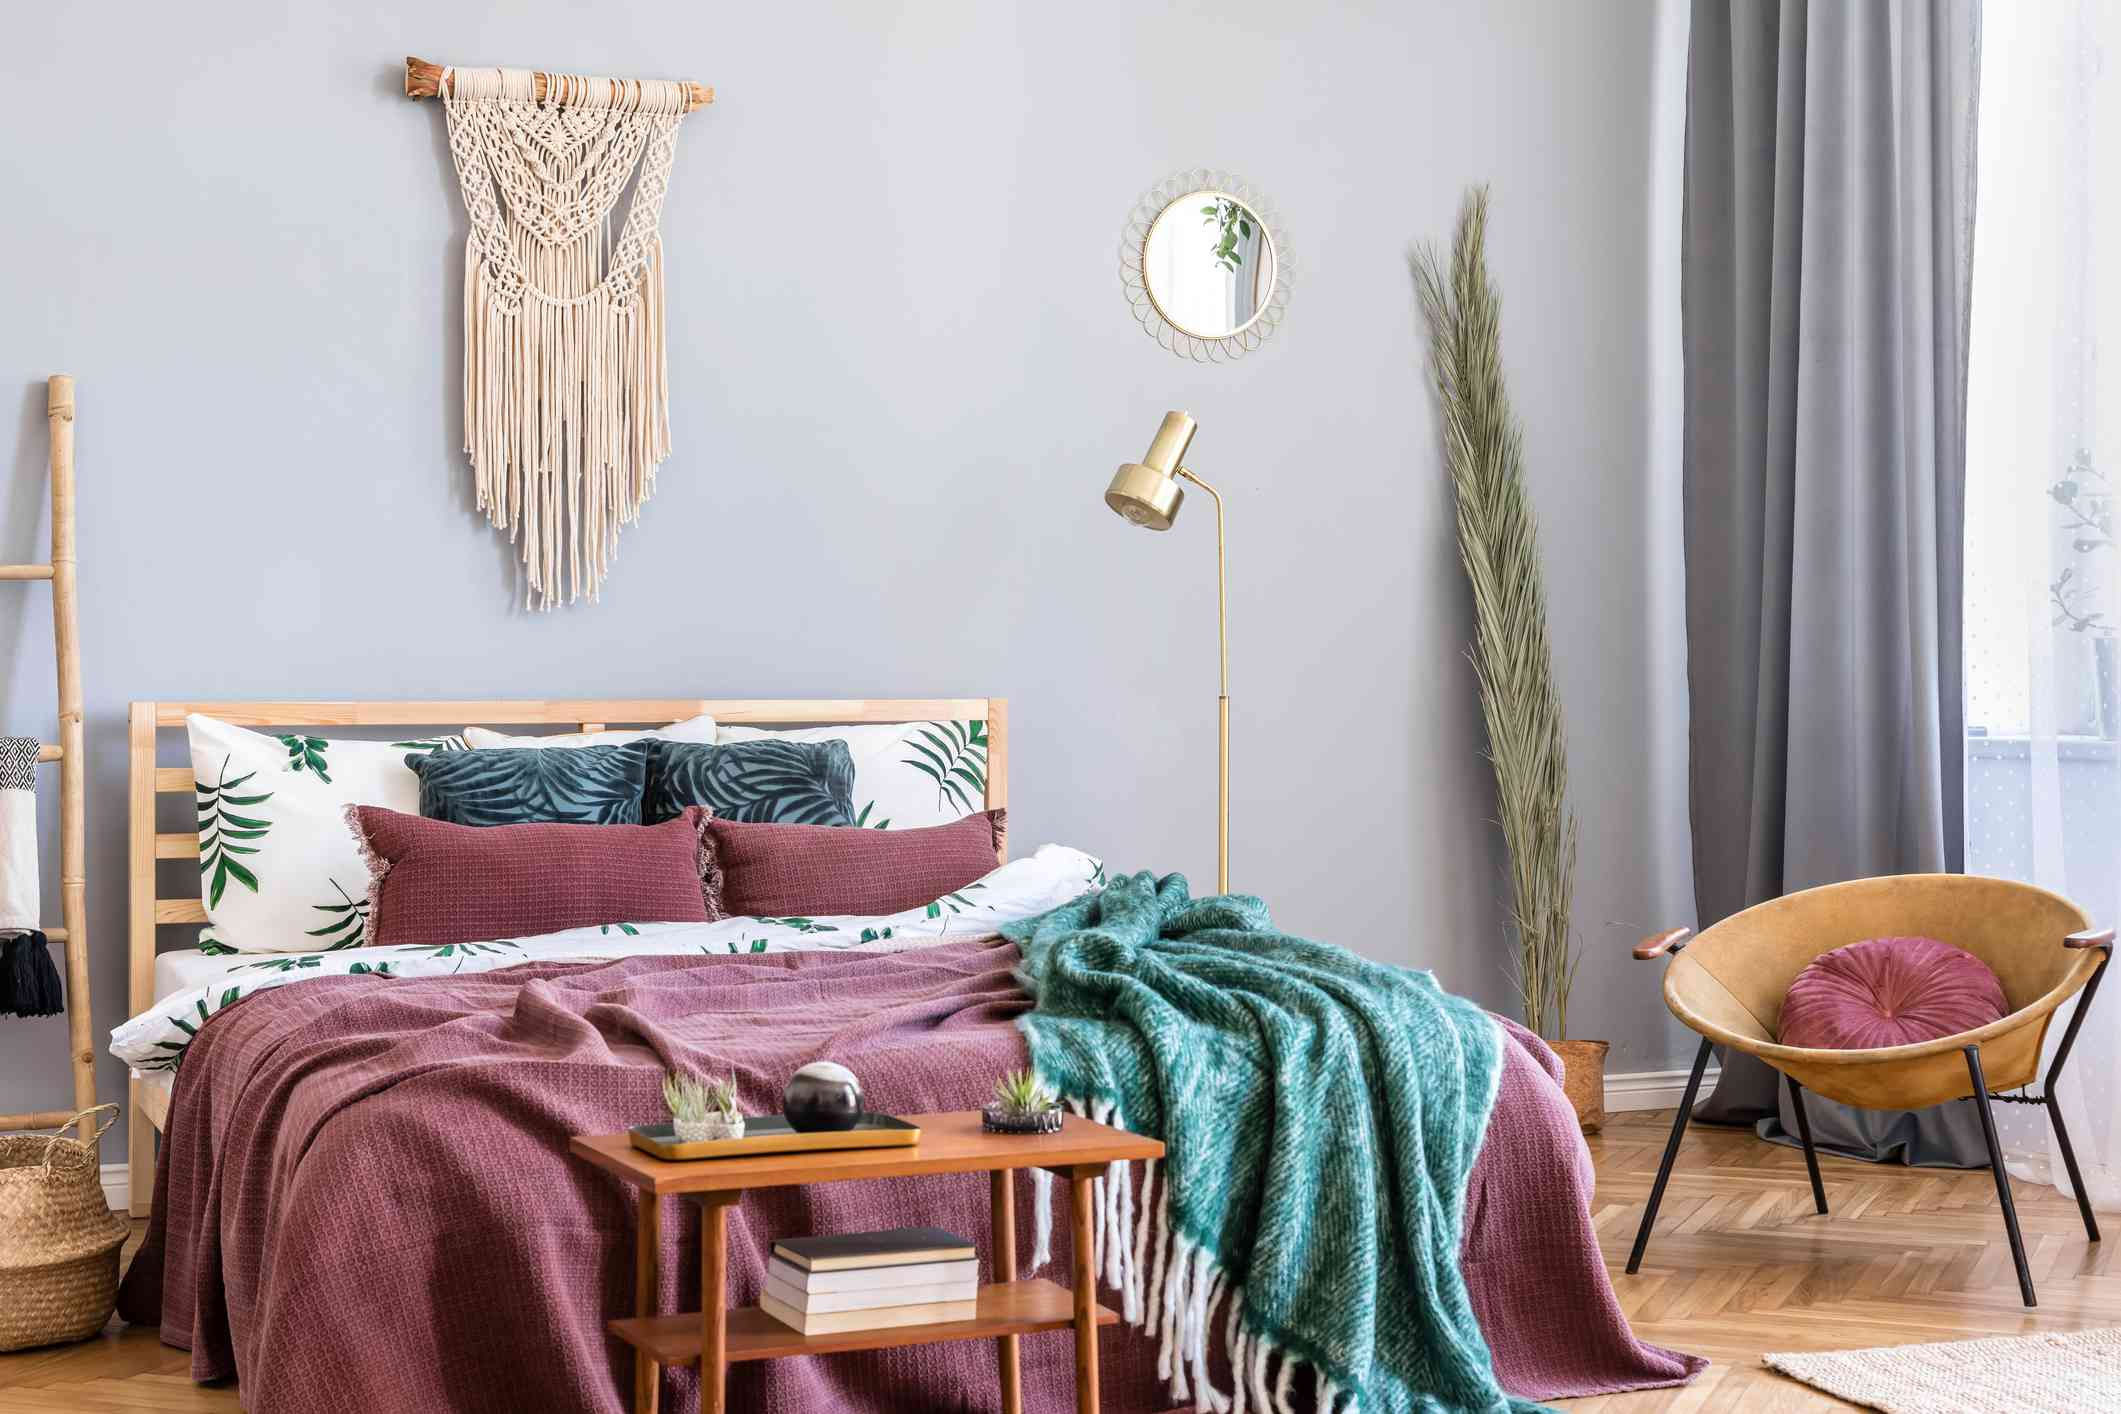 Stylish and luxury interior of bedroom with design furnitures, honey yellow armchair, gray macrame, gold lamp and elegant accessories. Beautiful bed sheets, blankets and pillows